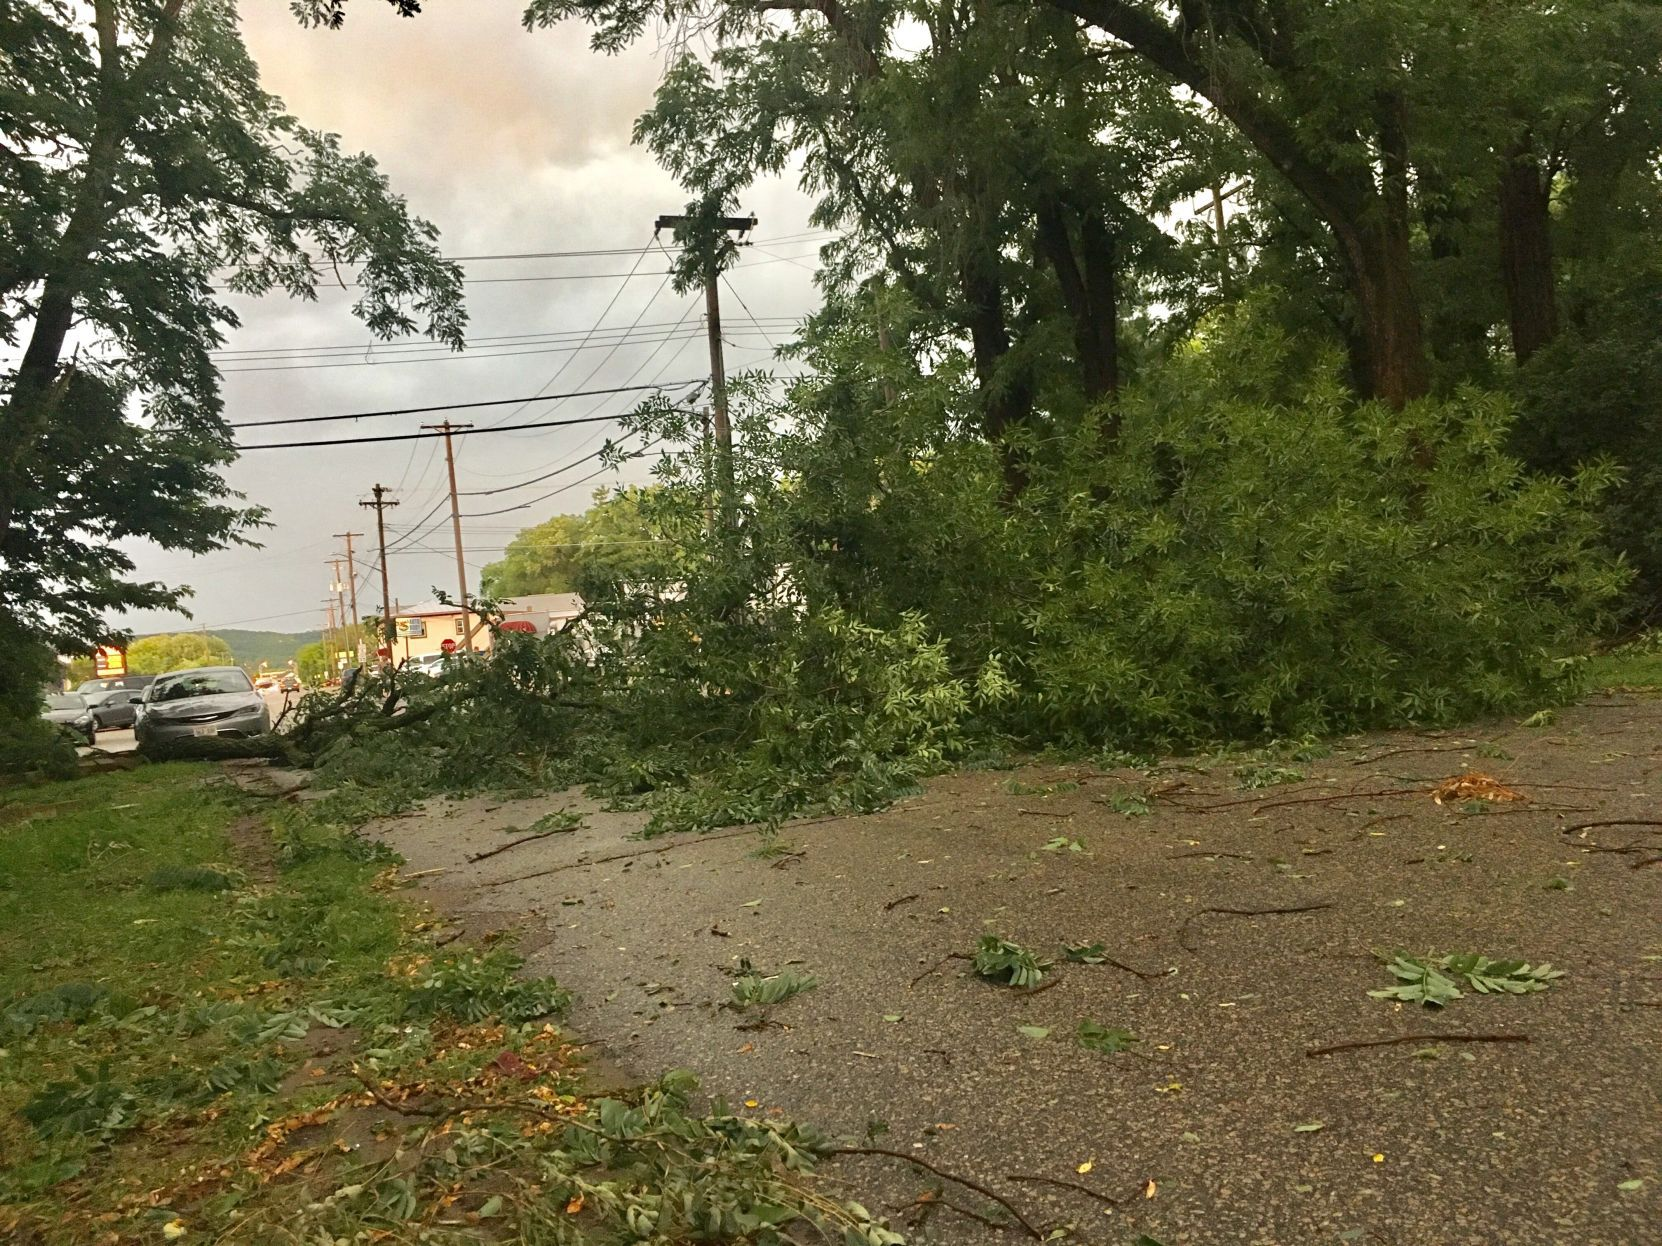 Powerful storms in cause damage, flooding in Midwest